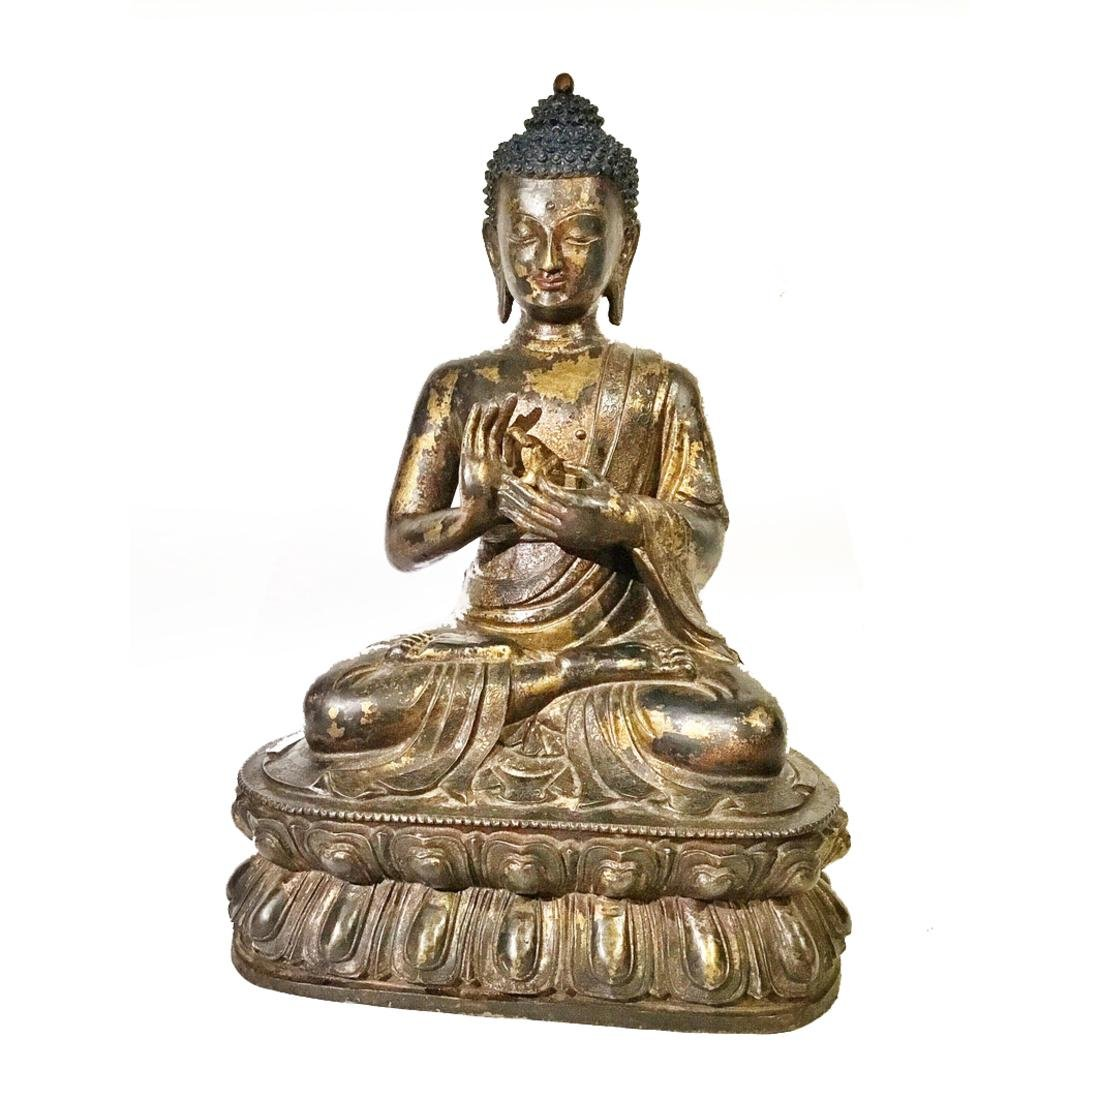 Early Chinese/Tibetan Large Gilt Bronze Buddha Statue